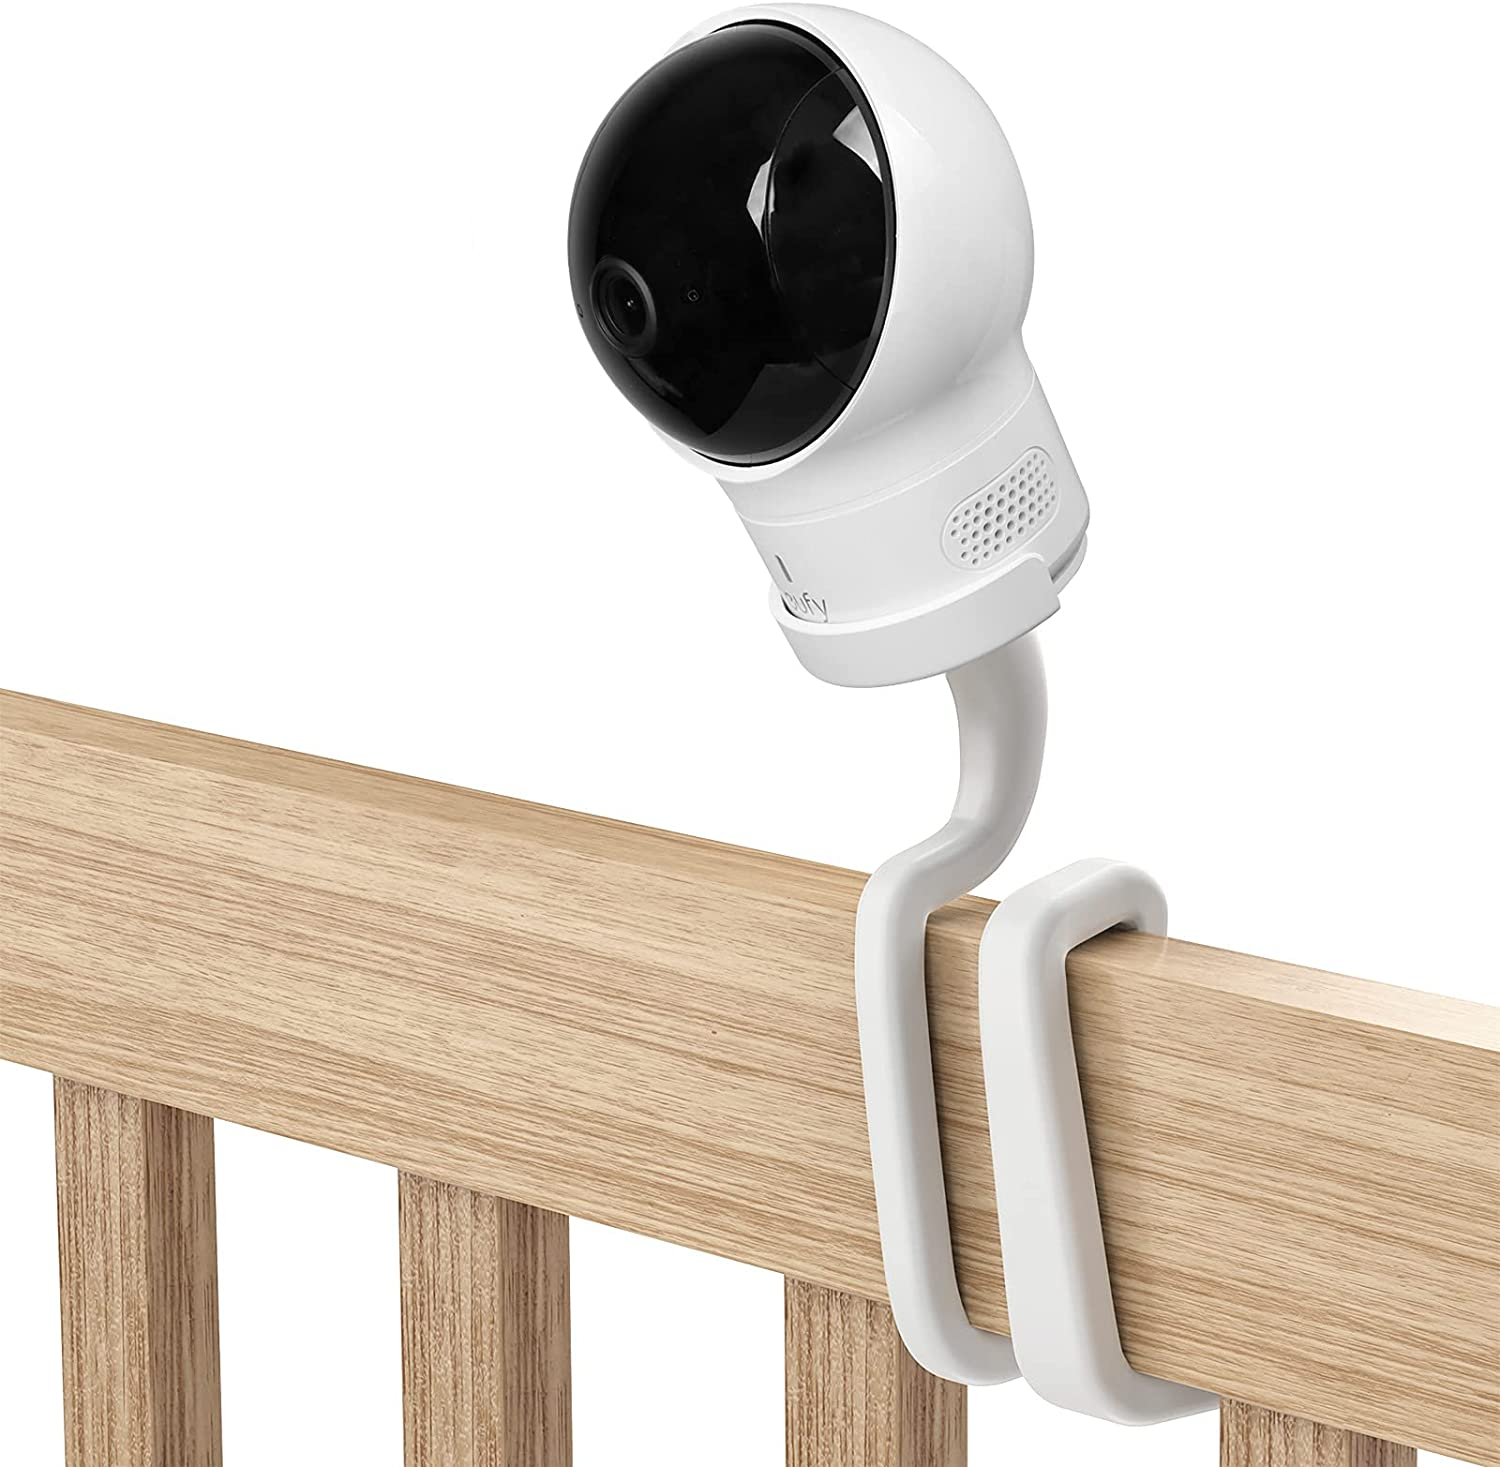 VOMENC Baby Monitor Mount, Compatible with Eufy Spaceview /Spaceview Pro / Spaceview S Baby Monitor-Suitable for Eufy Baby Monitor Mounting Bracket